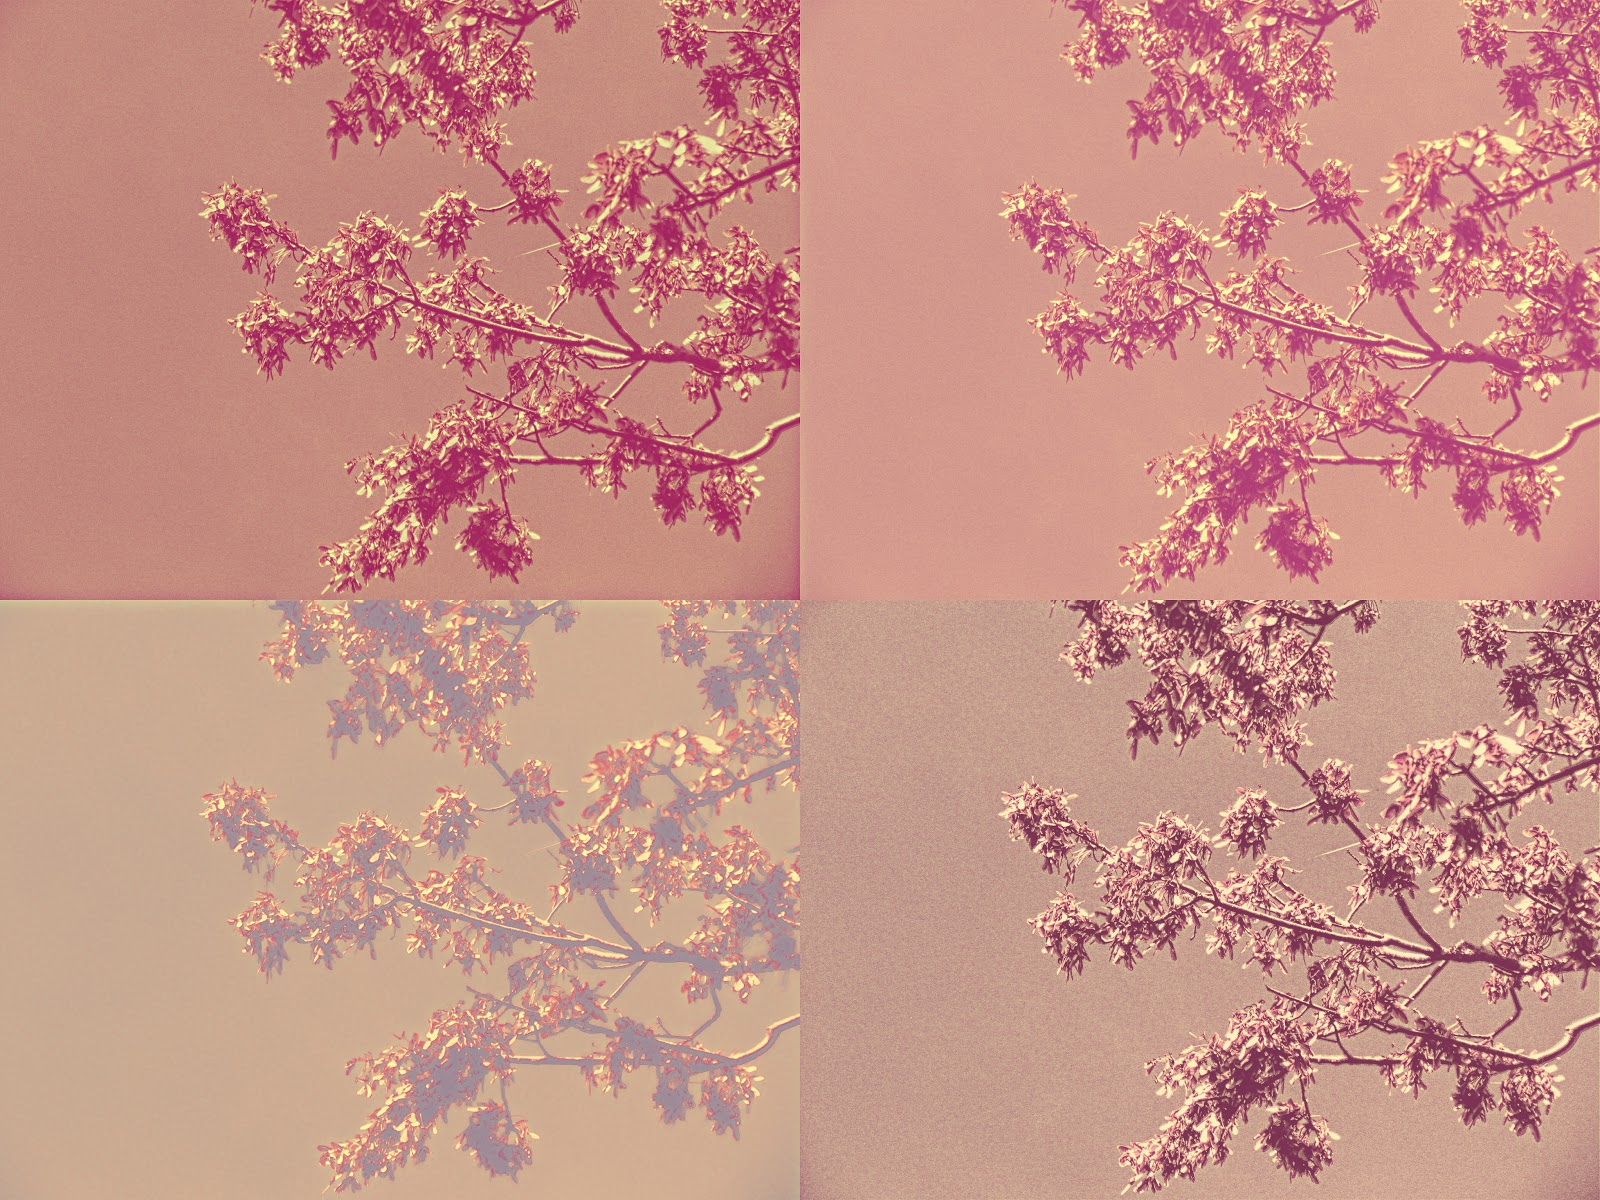 A four-square grid of trees with a pink photo editing filter